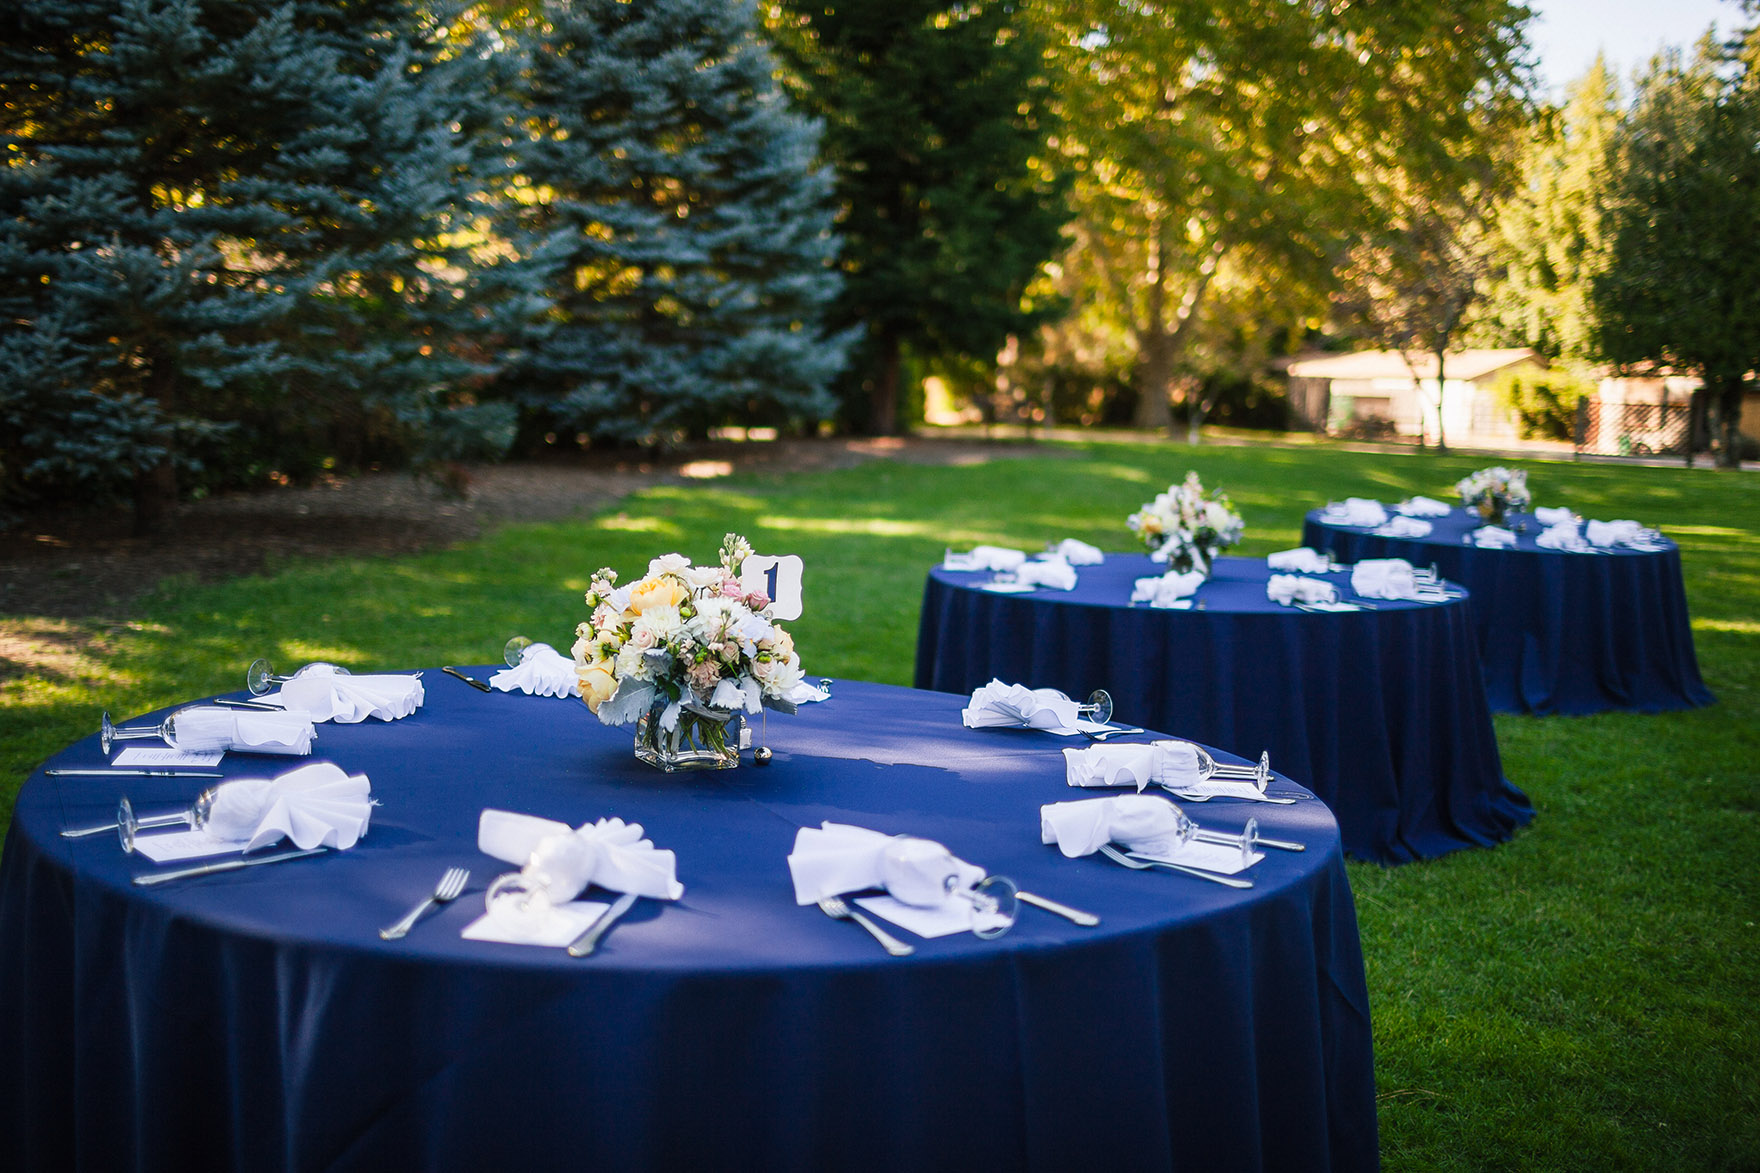 table settings blue table cloth white surrounded by grass lawn and green lush trees with floral center pieces flowers waiting for the highlands park wedding reception to begin start at a highlands park wedding the perfect felton wedding venue santa cruz wedding venue redwood wedding venue santa cruz wedding photographer